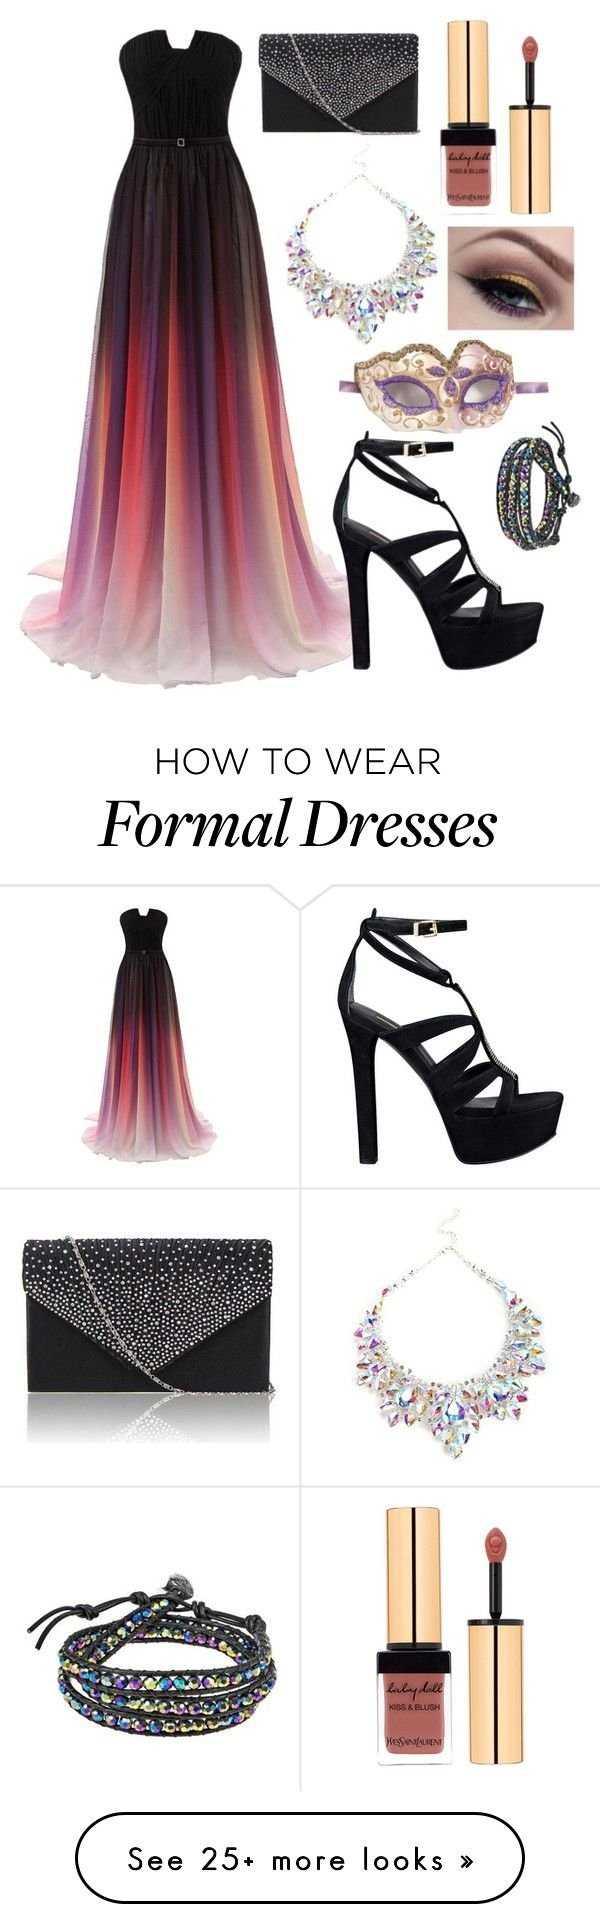 10 Fashionable Masquerade Outfit Ideas For Women 45 best masquerade party ideas images on pinterest masquerade ball 2020